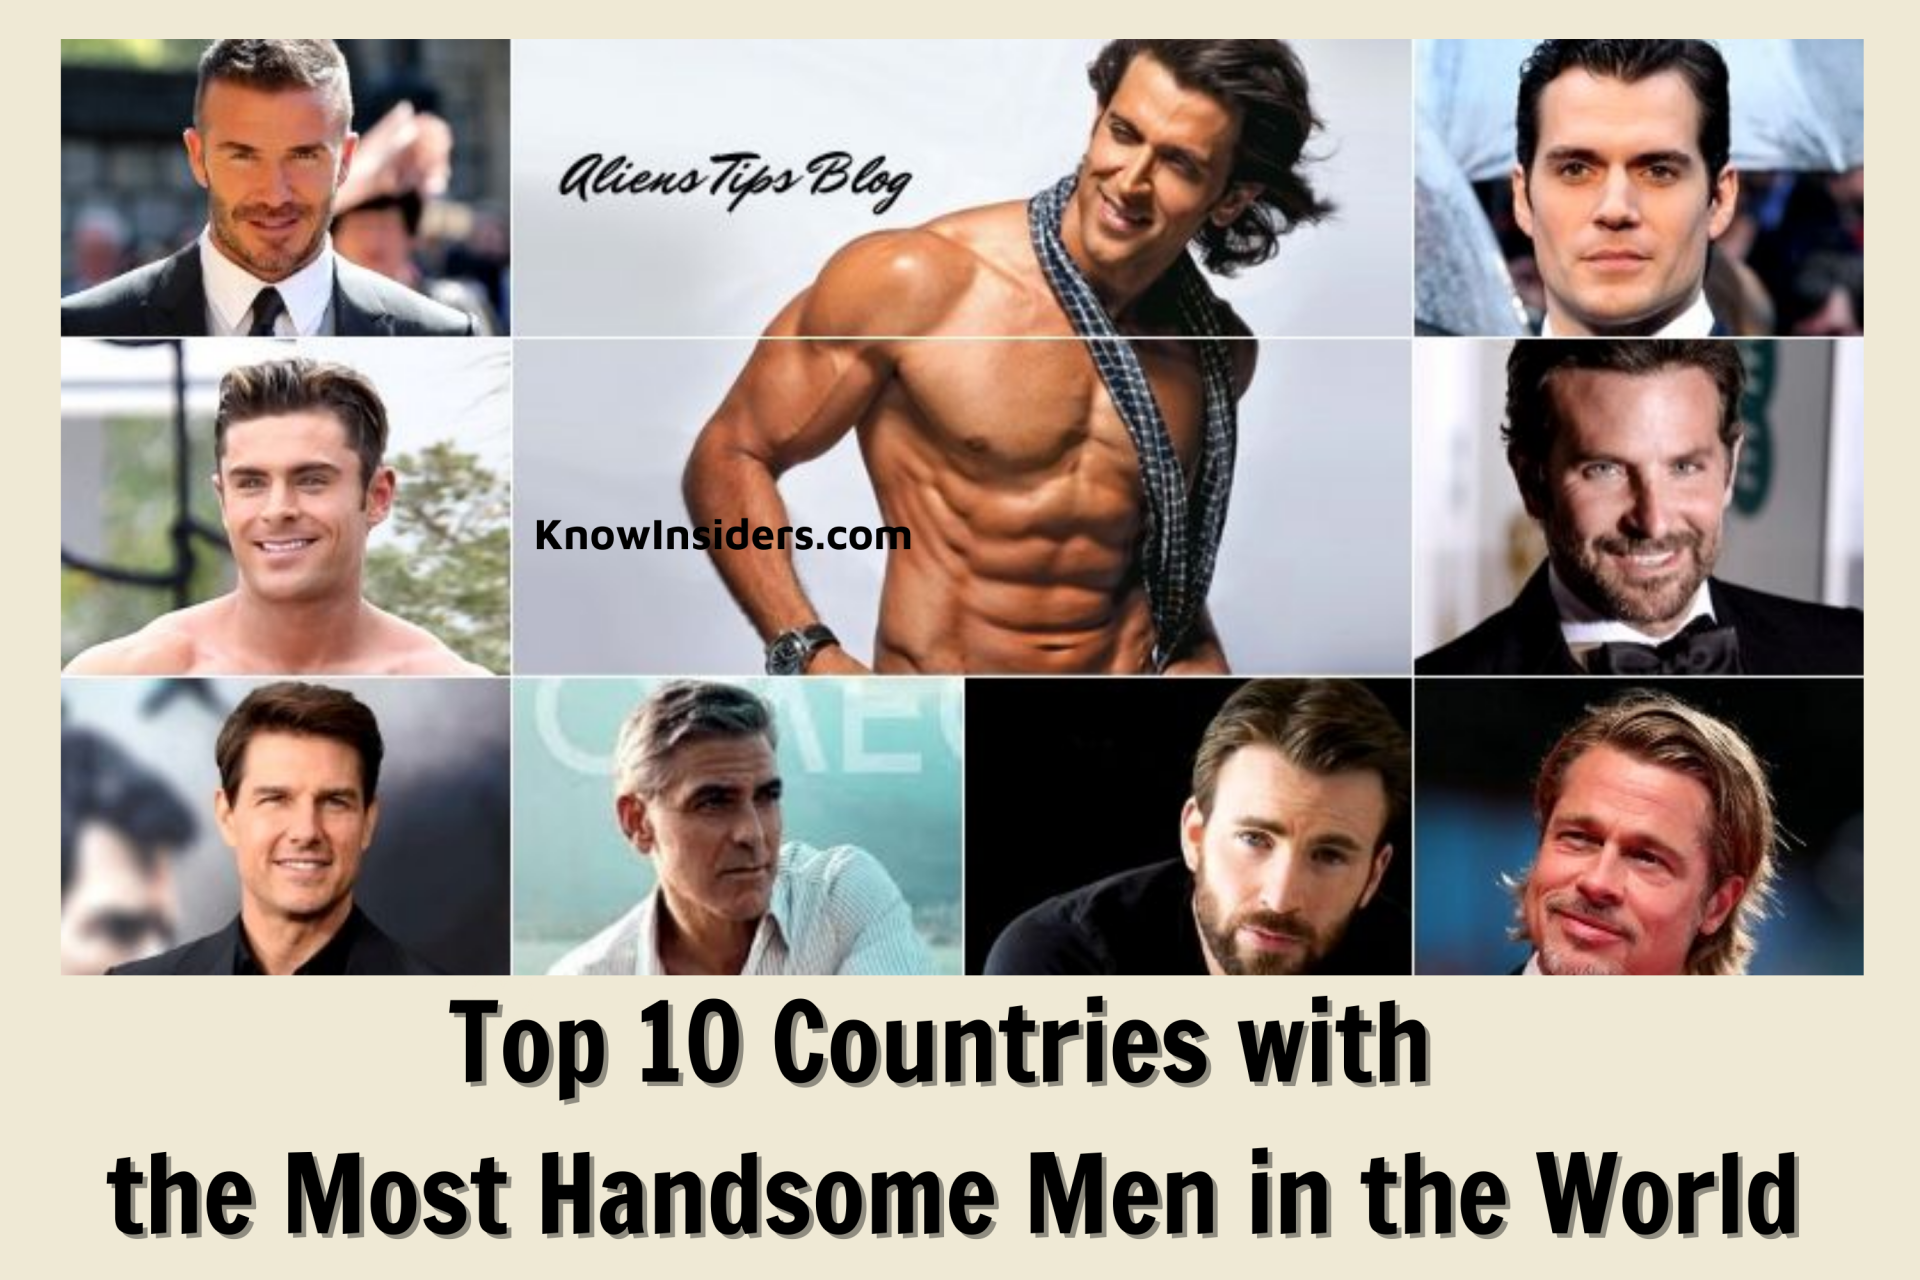 Top 10 Countries with Most Handsome Men in the World - Updated